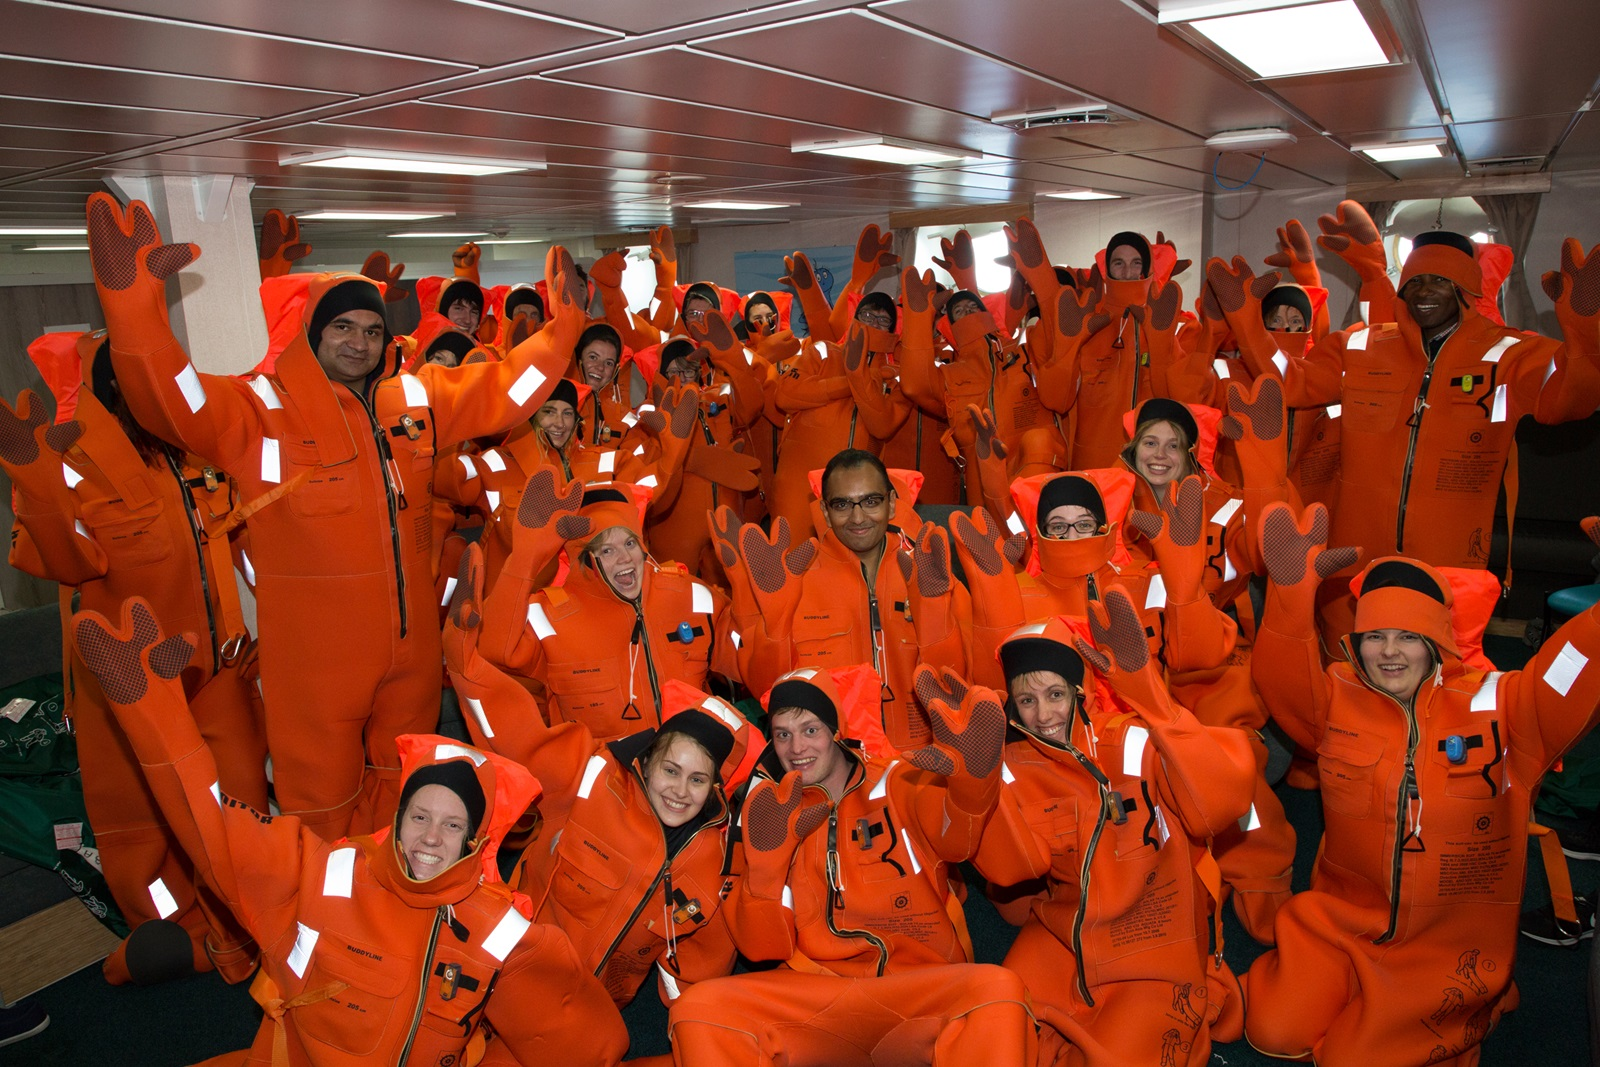 A large group of people in colourful immersion suits raise their arms into the air.